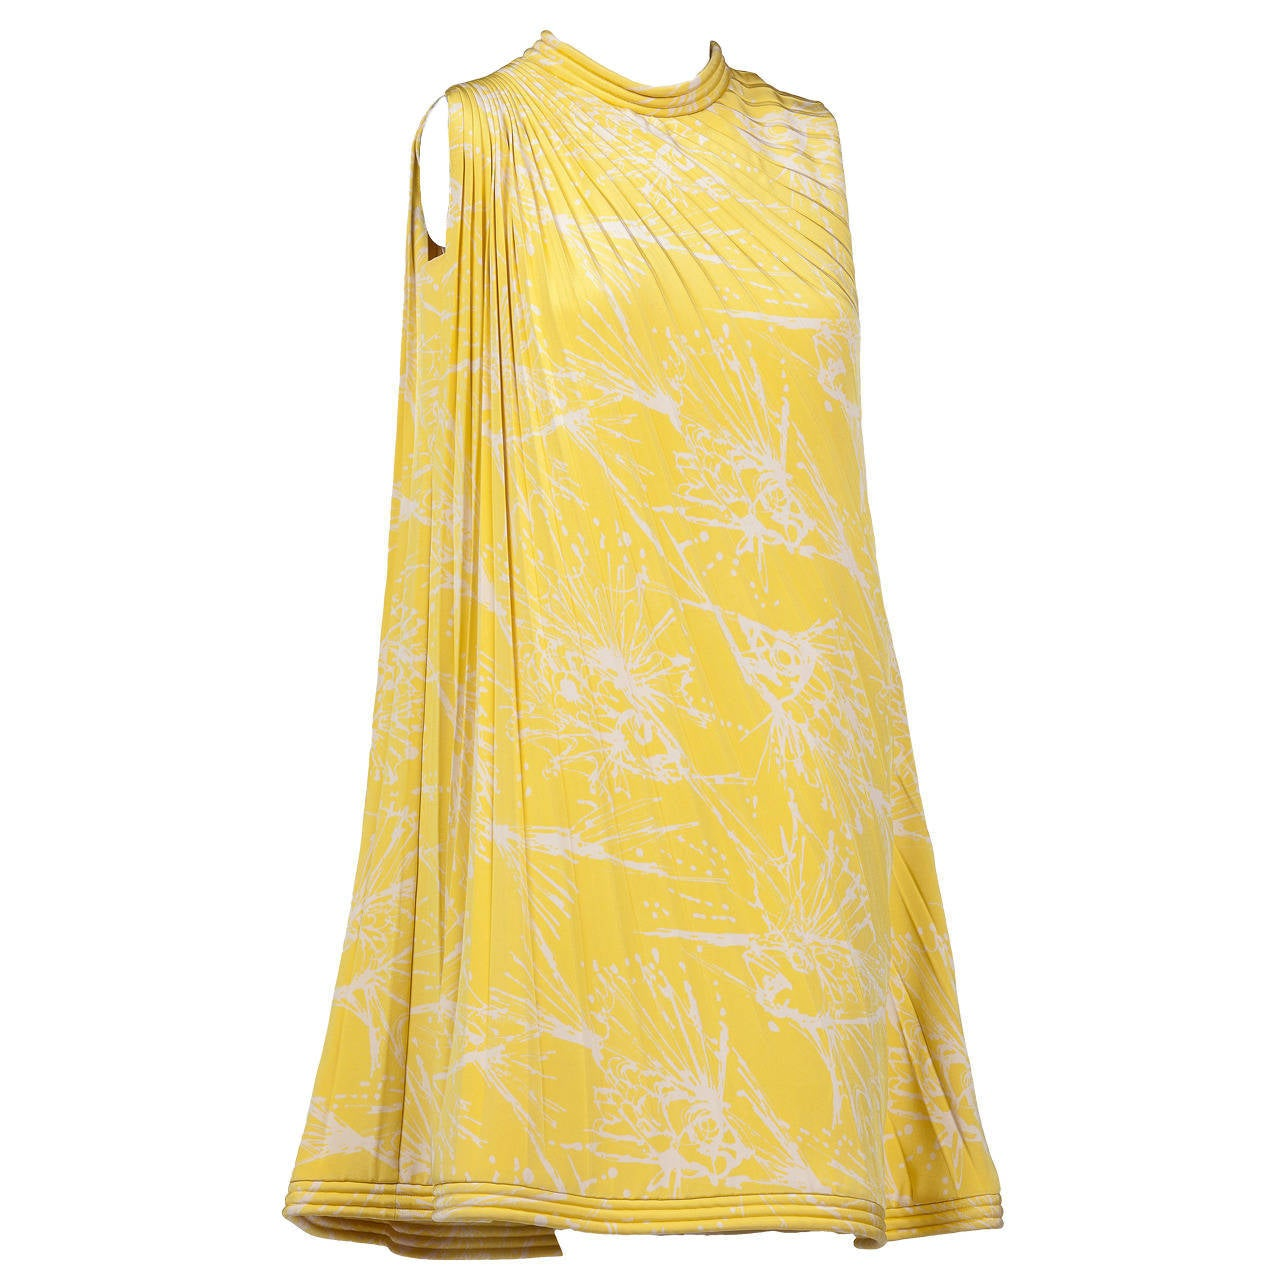 Pierre Cardin Haute Couture Pleated Silk Abstract Print Mini Dress c.1968 For Sale